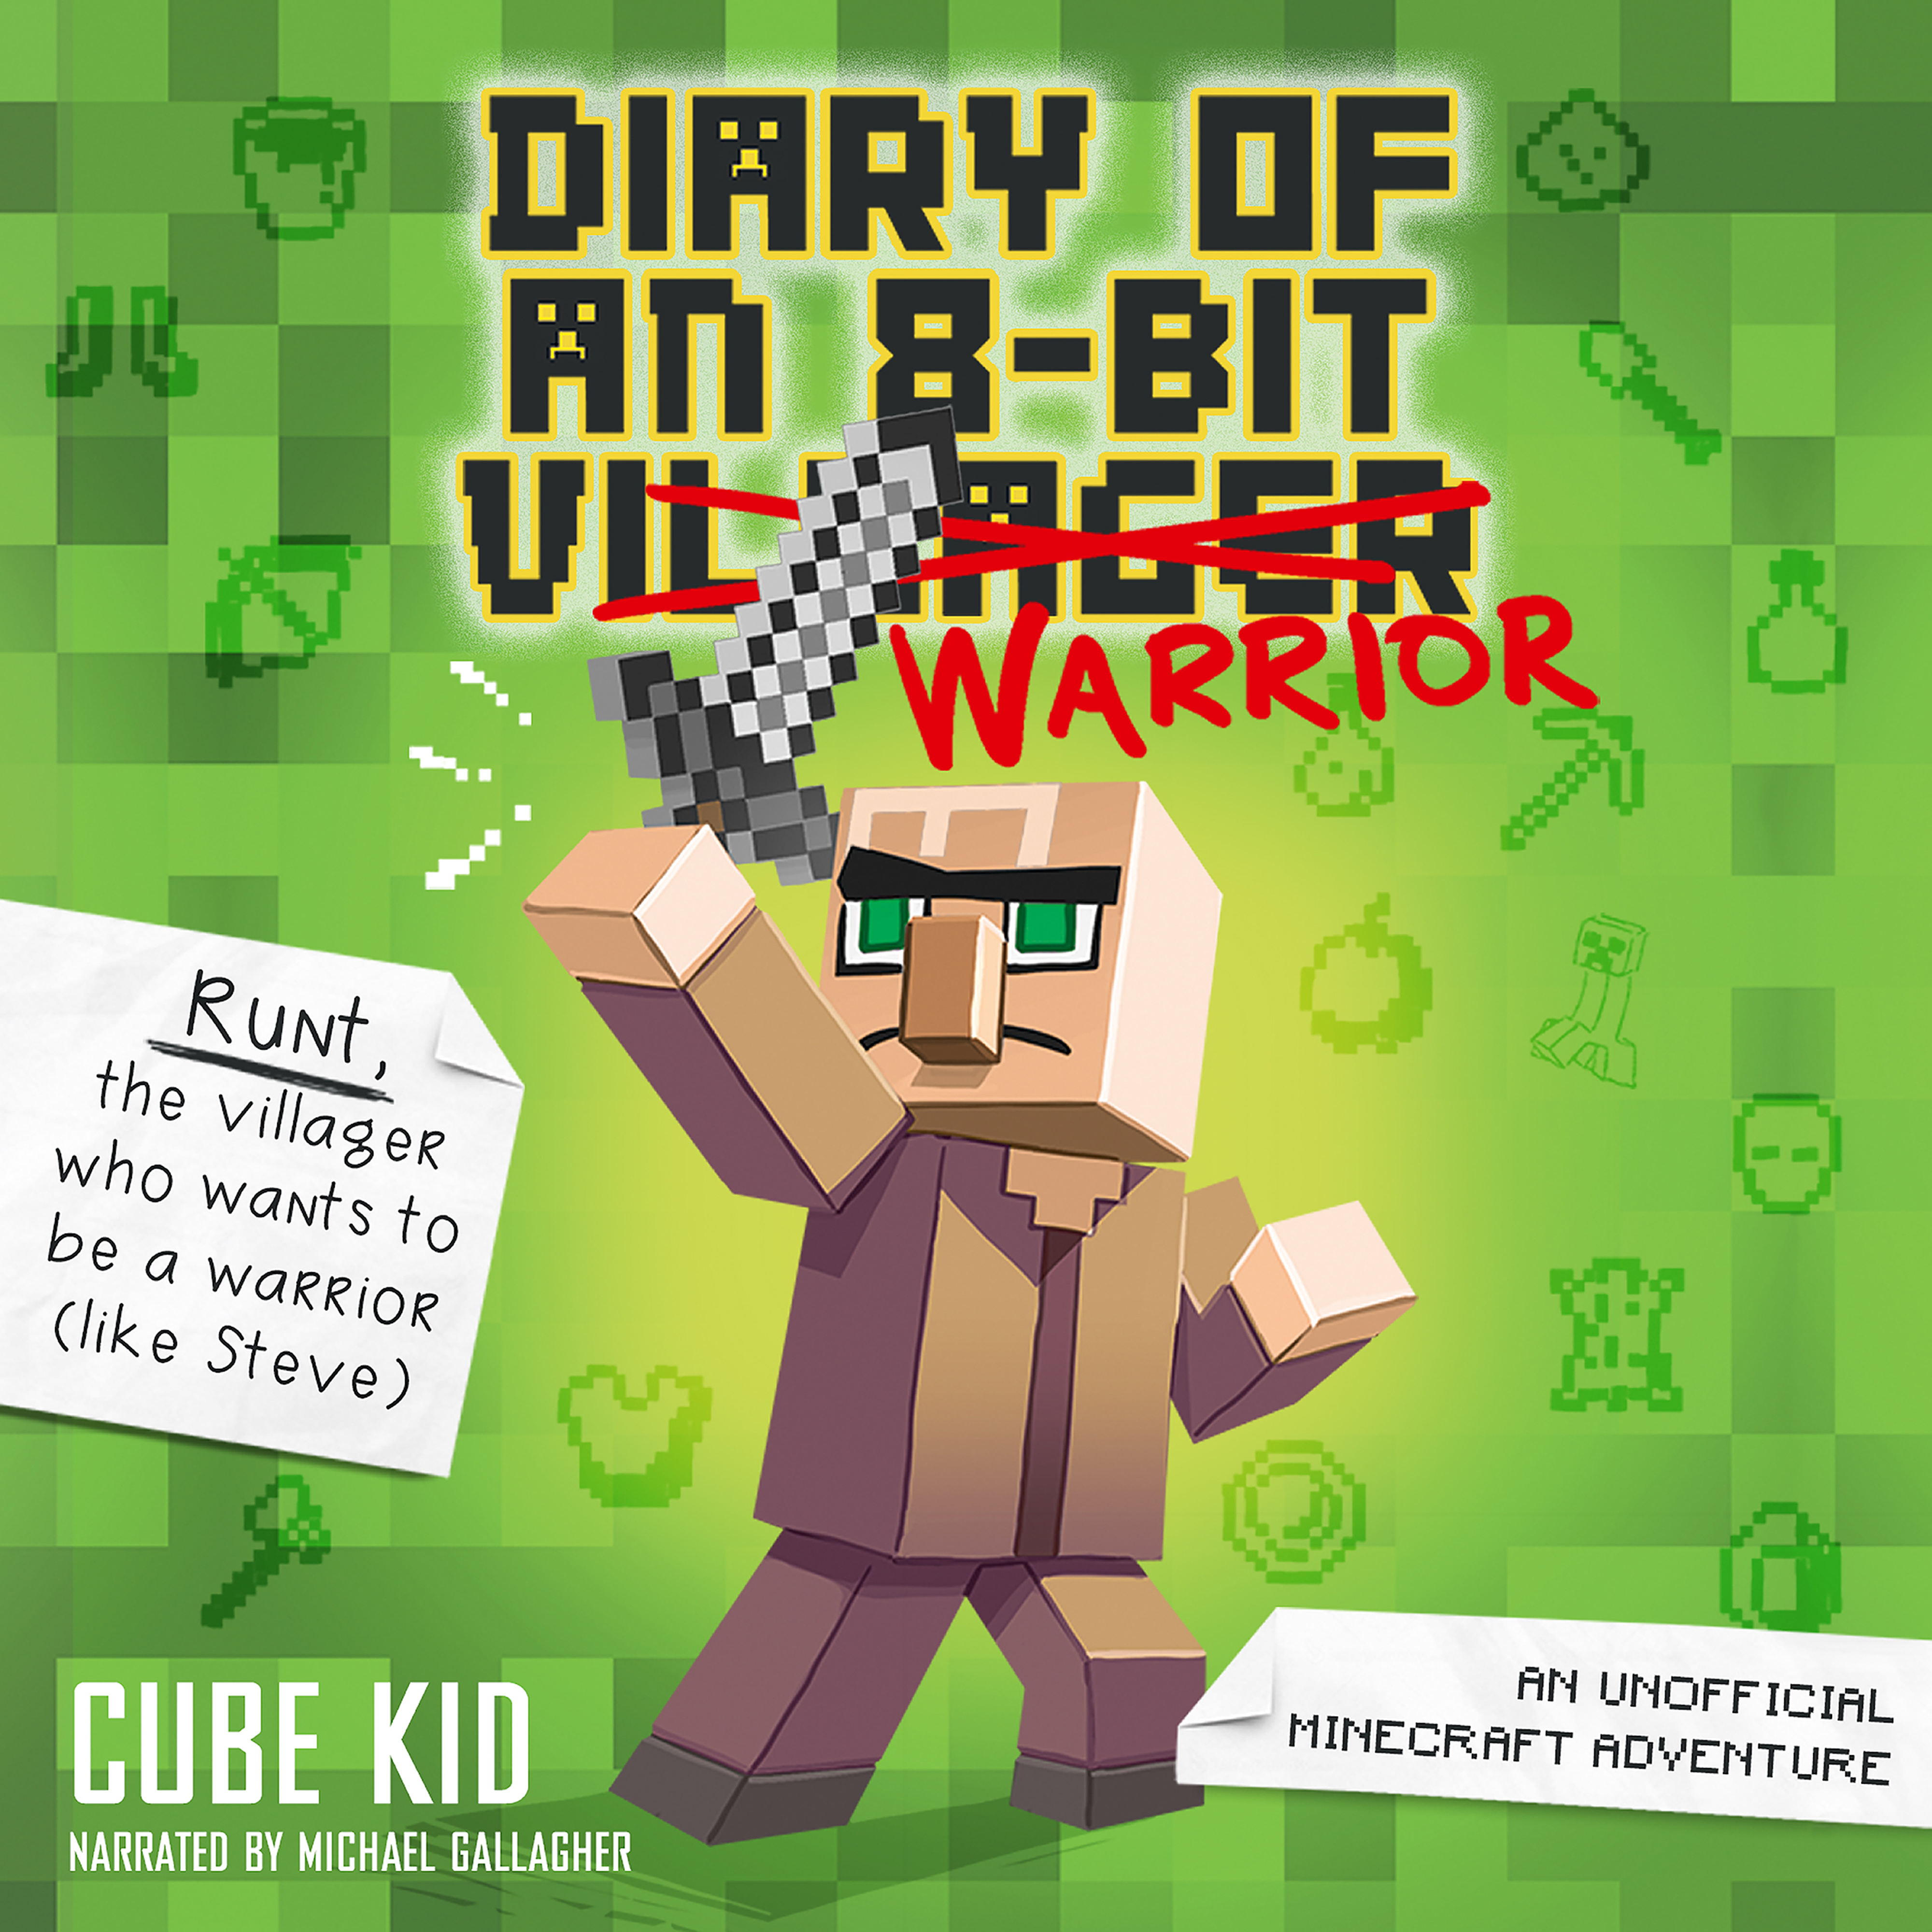 Diary Of An 8 Bit Warrior Book 1 8 Bit Warrior Series Audiobook By Cube Kid Michael Gallagher Official Publisher Page Simon Schuster